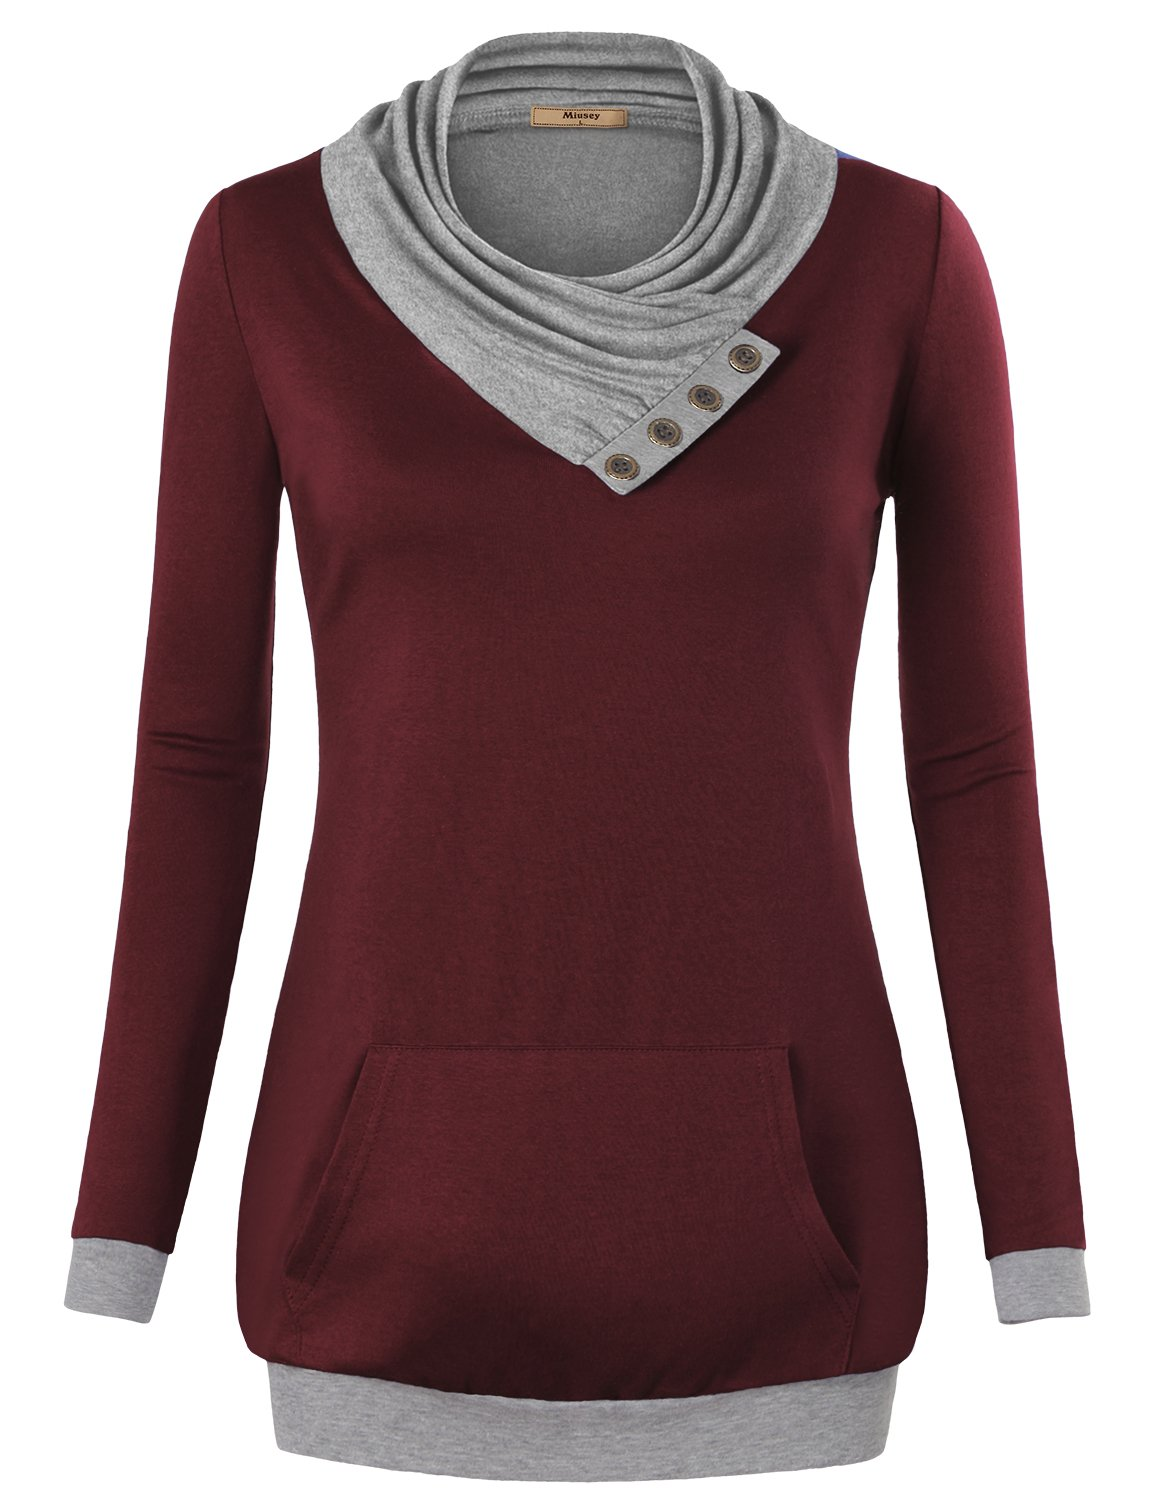 Miusey Women Clothing, V Neck Long Sleeve Flared Shirt Loose Fit Fall to Wear with Leggings Casual Tunic Top Wine Red XX-Large